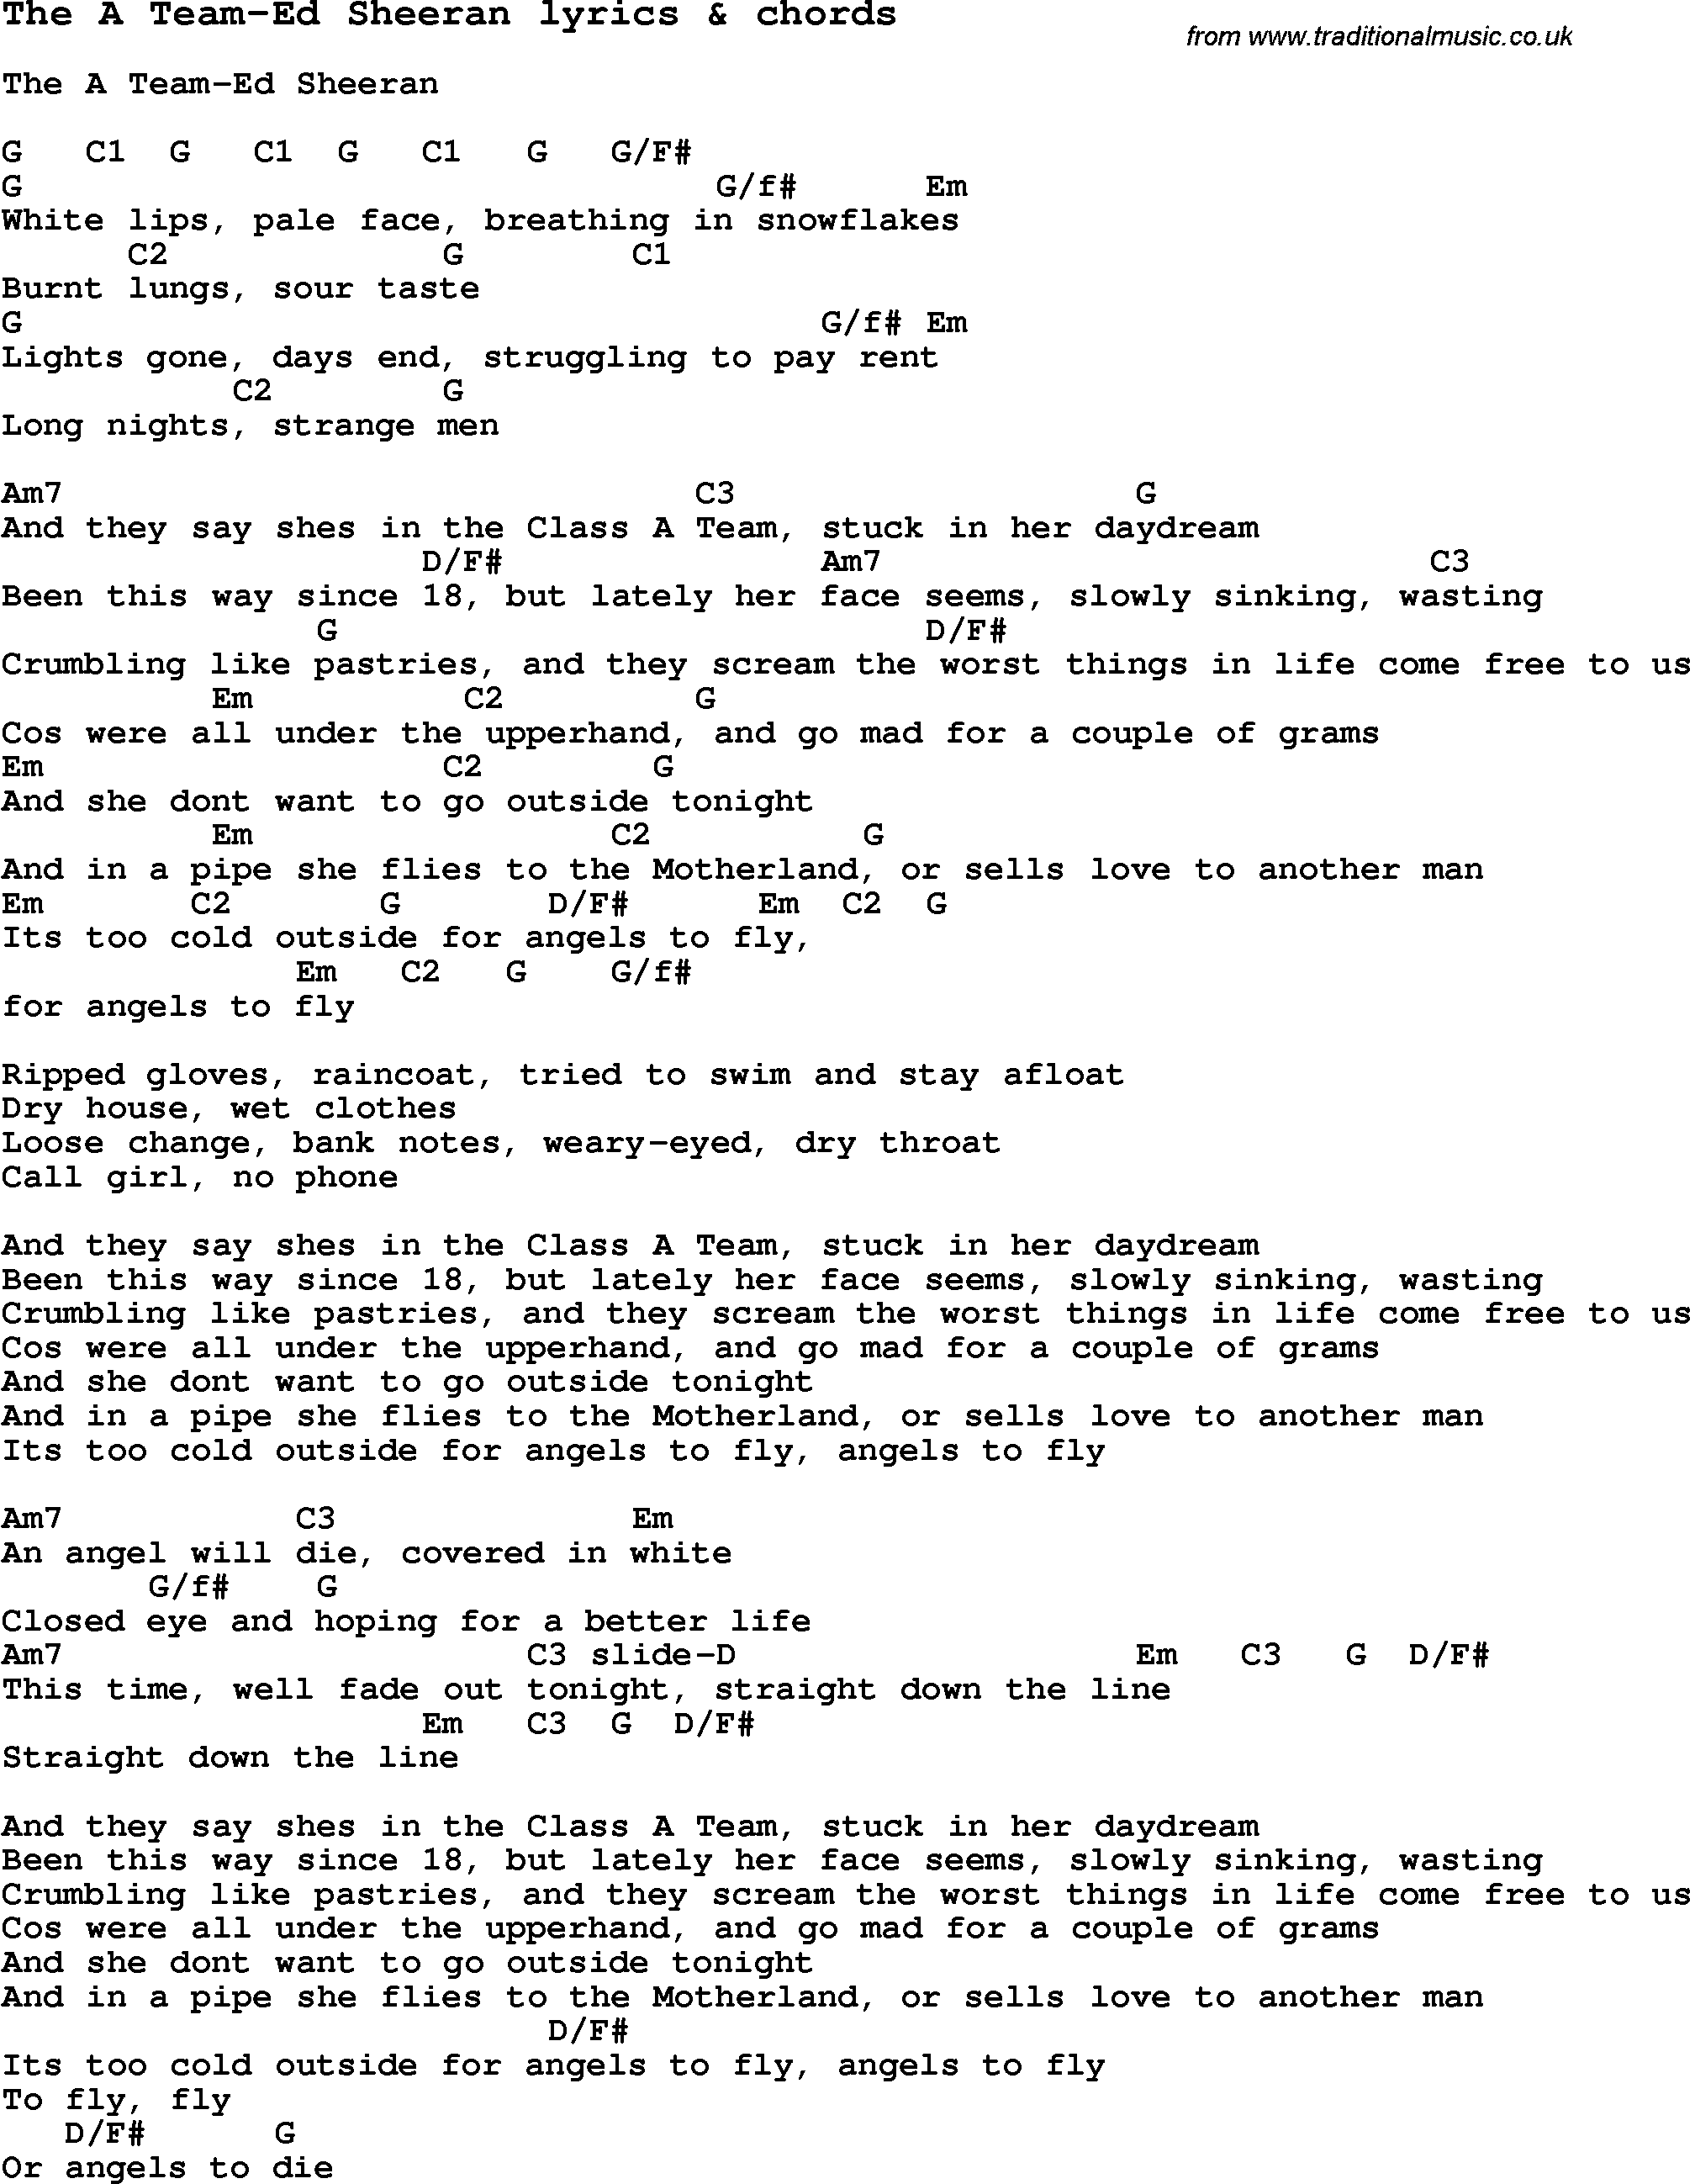 Love Song Lyrics For The A Team Ed Sheeran With Chords For Ukulele ...